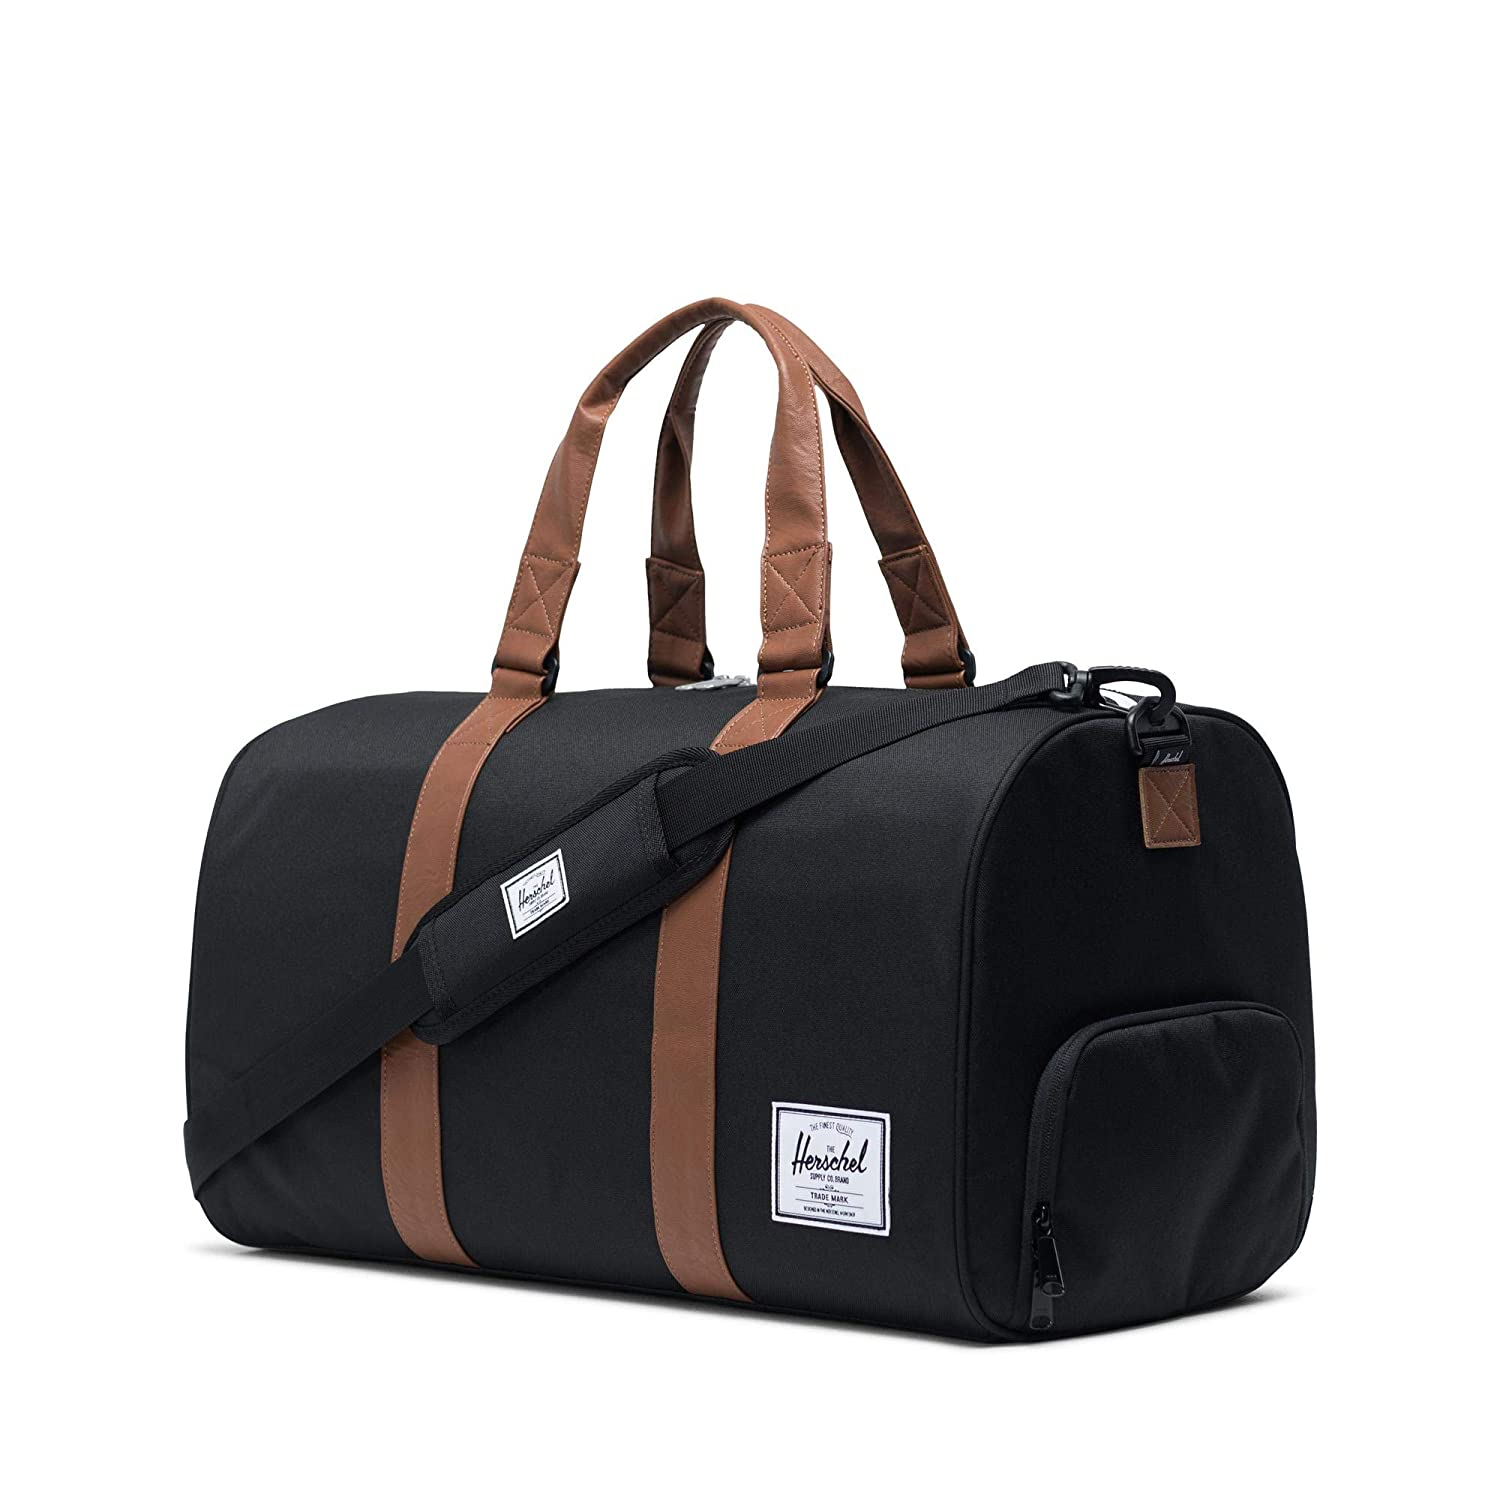 85028fe3c5b0 Herschel Novel Duffel Bag-Black